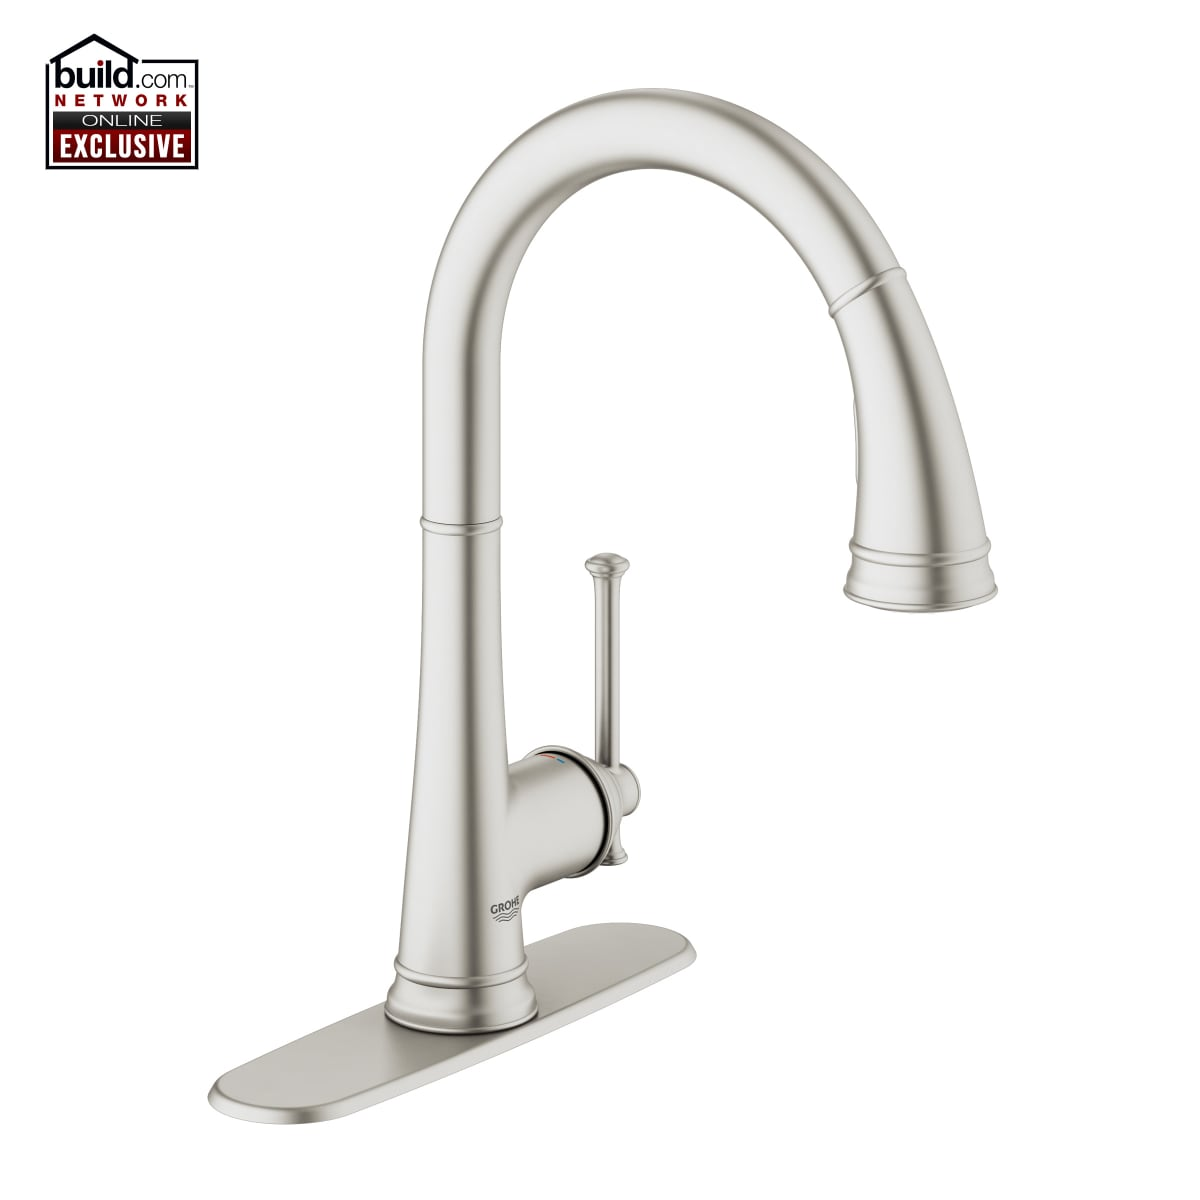 Grohe 30210DC0 SuperSteel Joliette Traditional Pull-down Spray ...